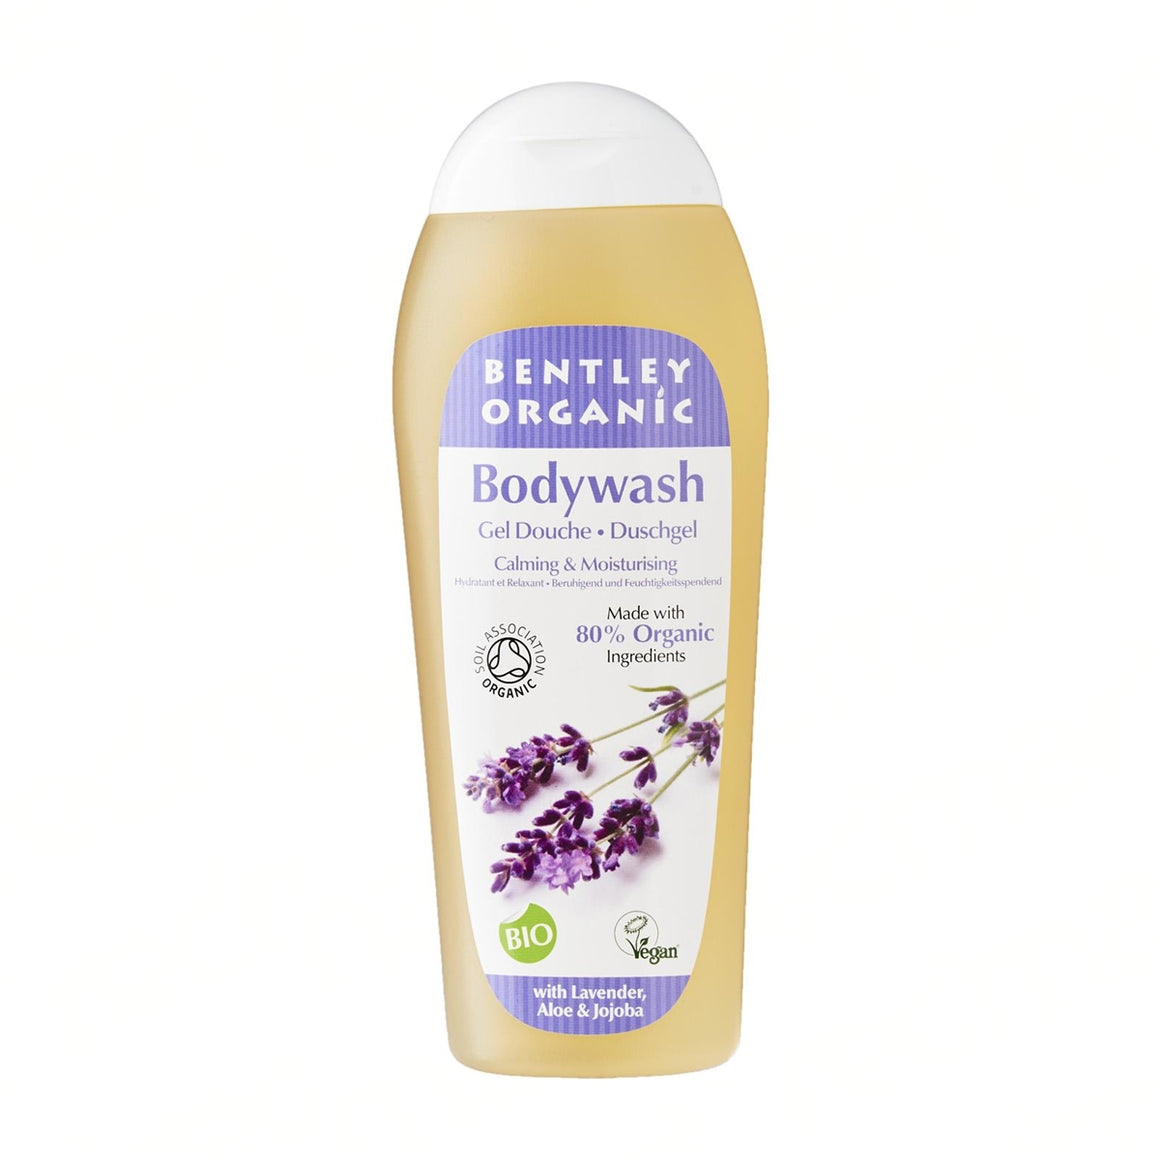 Bentley Organic : Calming and Moisturising Bodywash